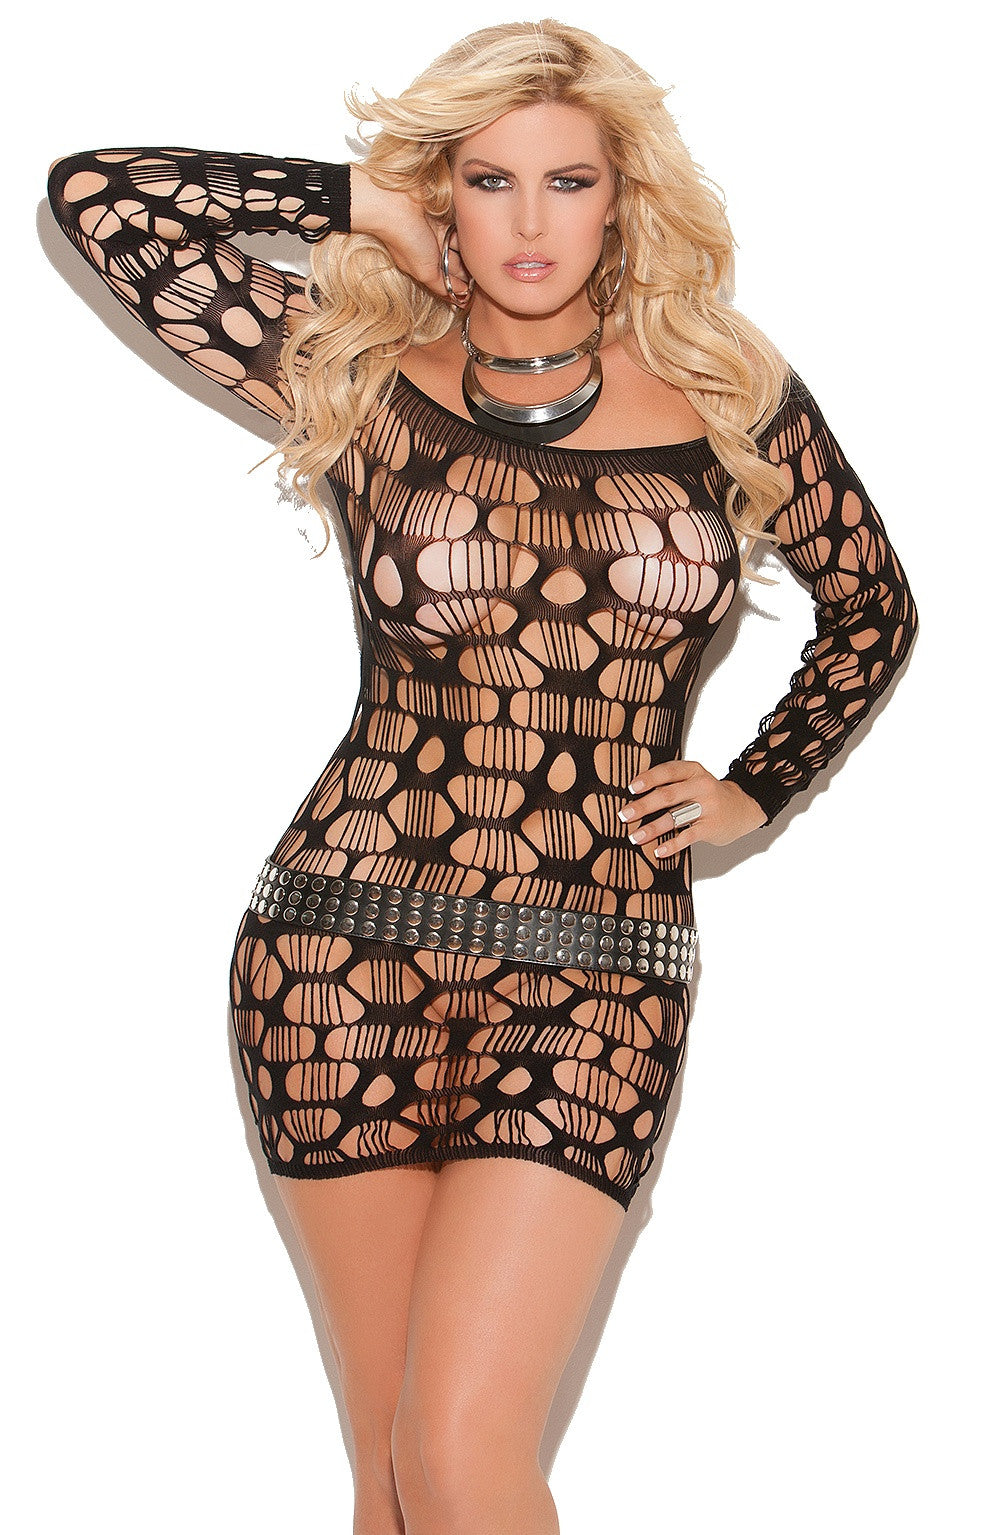 EM-8674 Erotic mini dress - Sexylingerieland  - 3